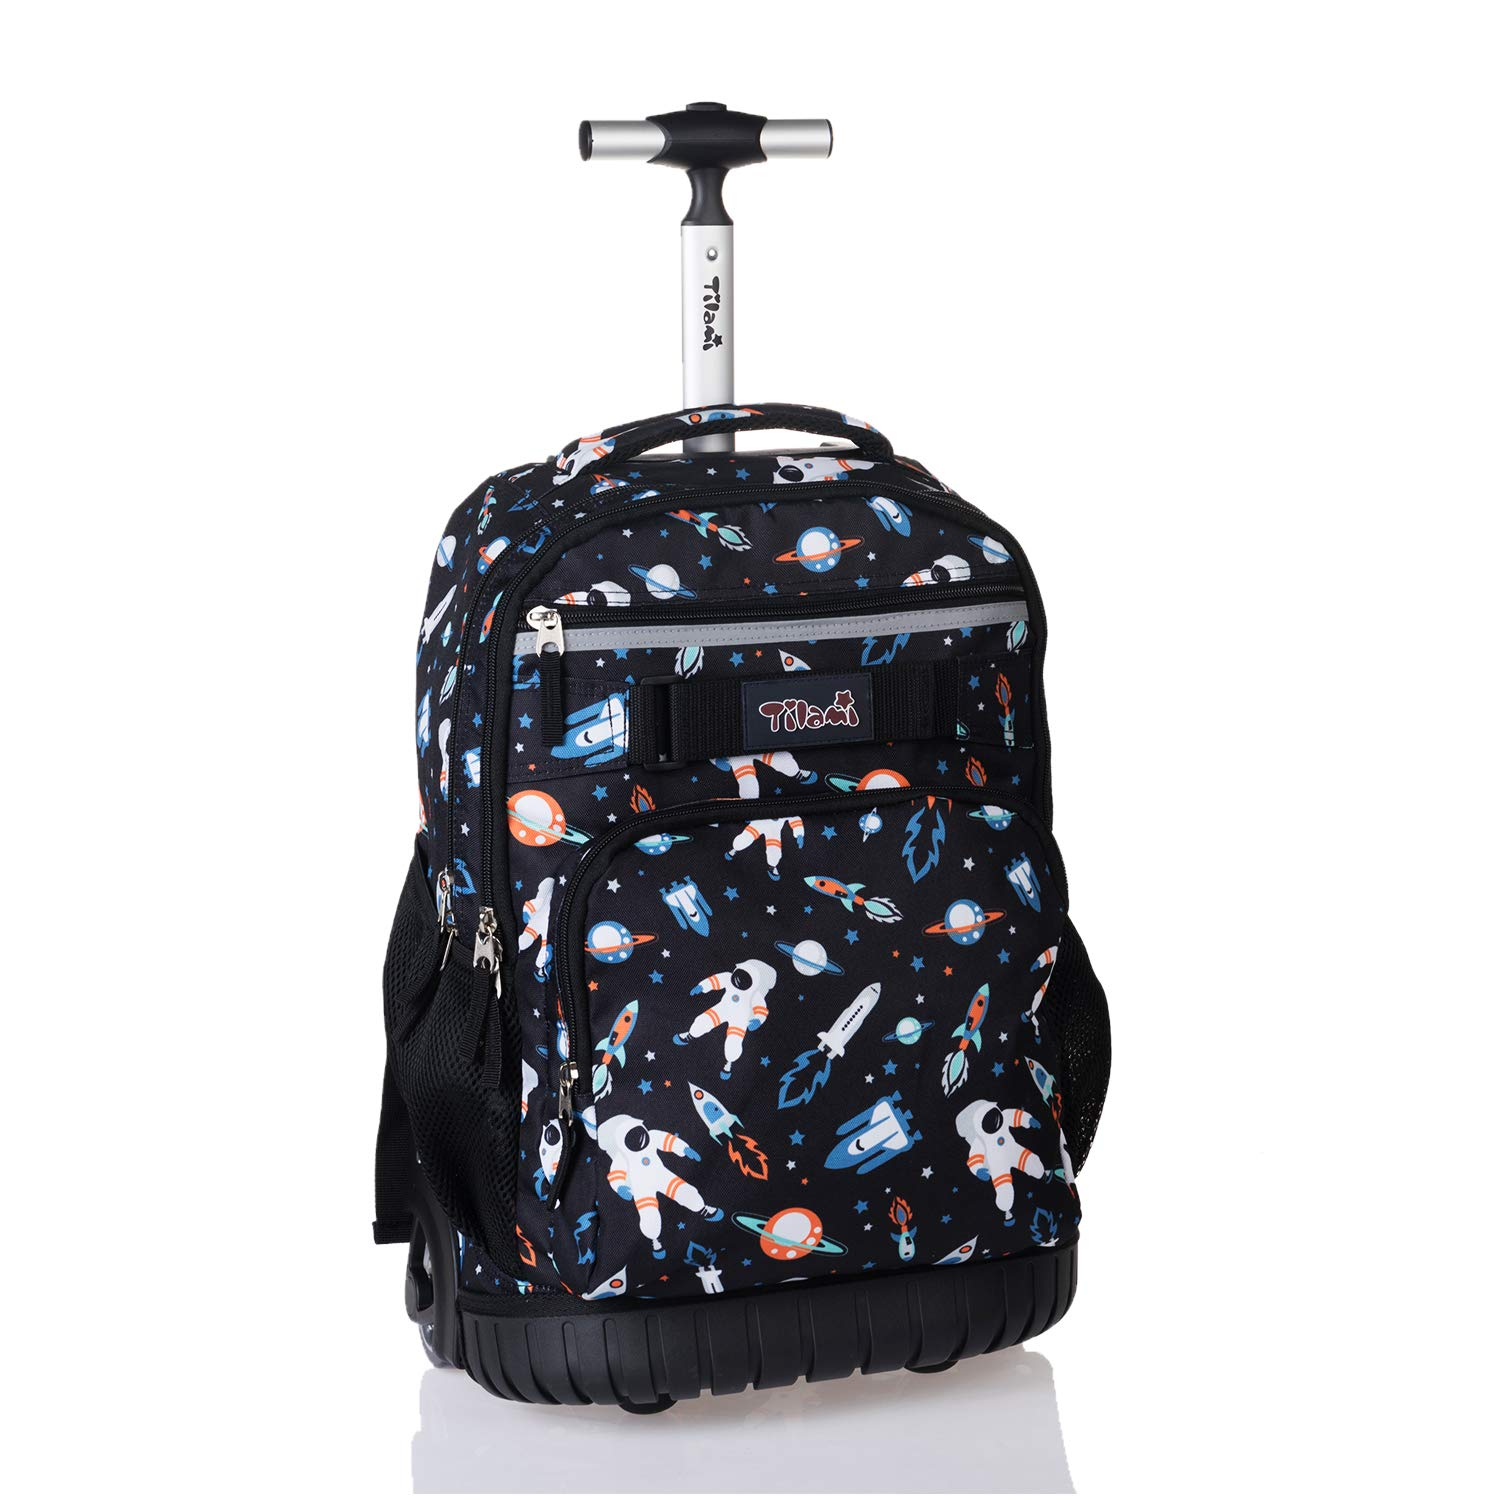 Tilami Rolling Backpack 18 inch Wheeled Laptop Backpack Waterproof School College Student Travel Trip Boys and Girls, Astronaut by Tilami